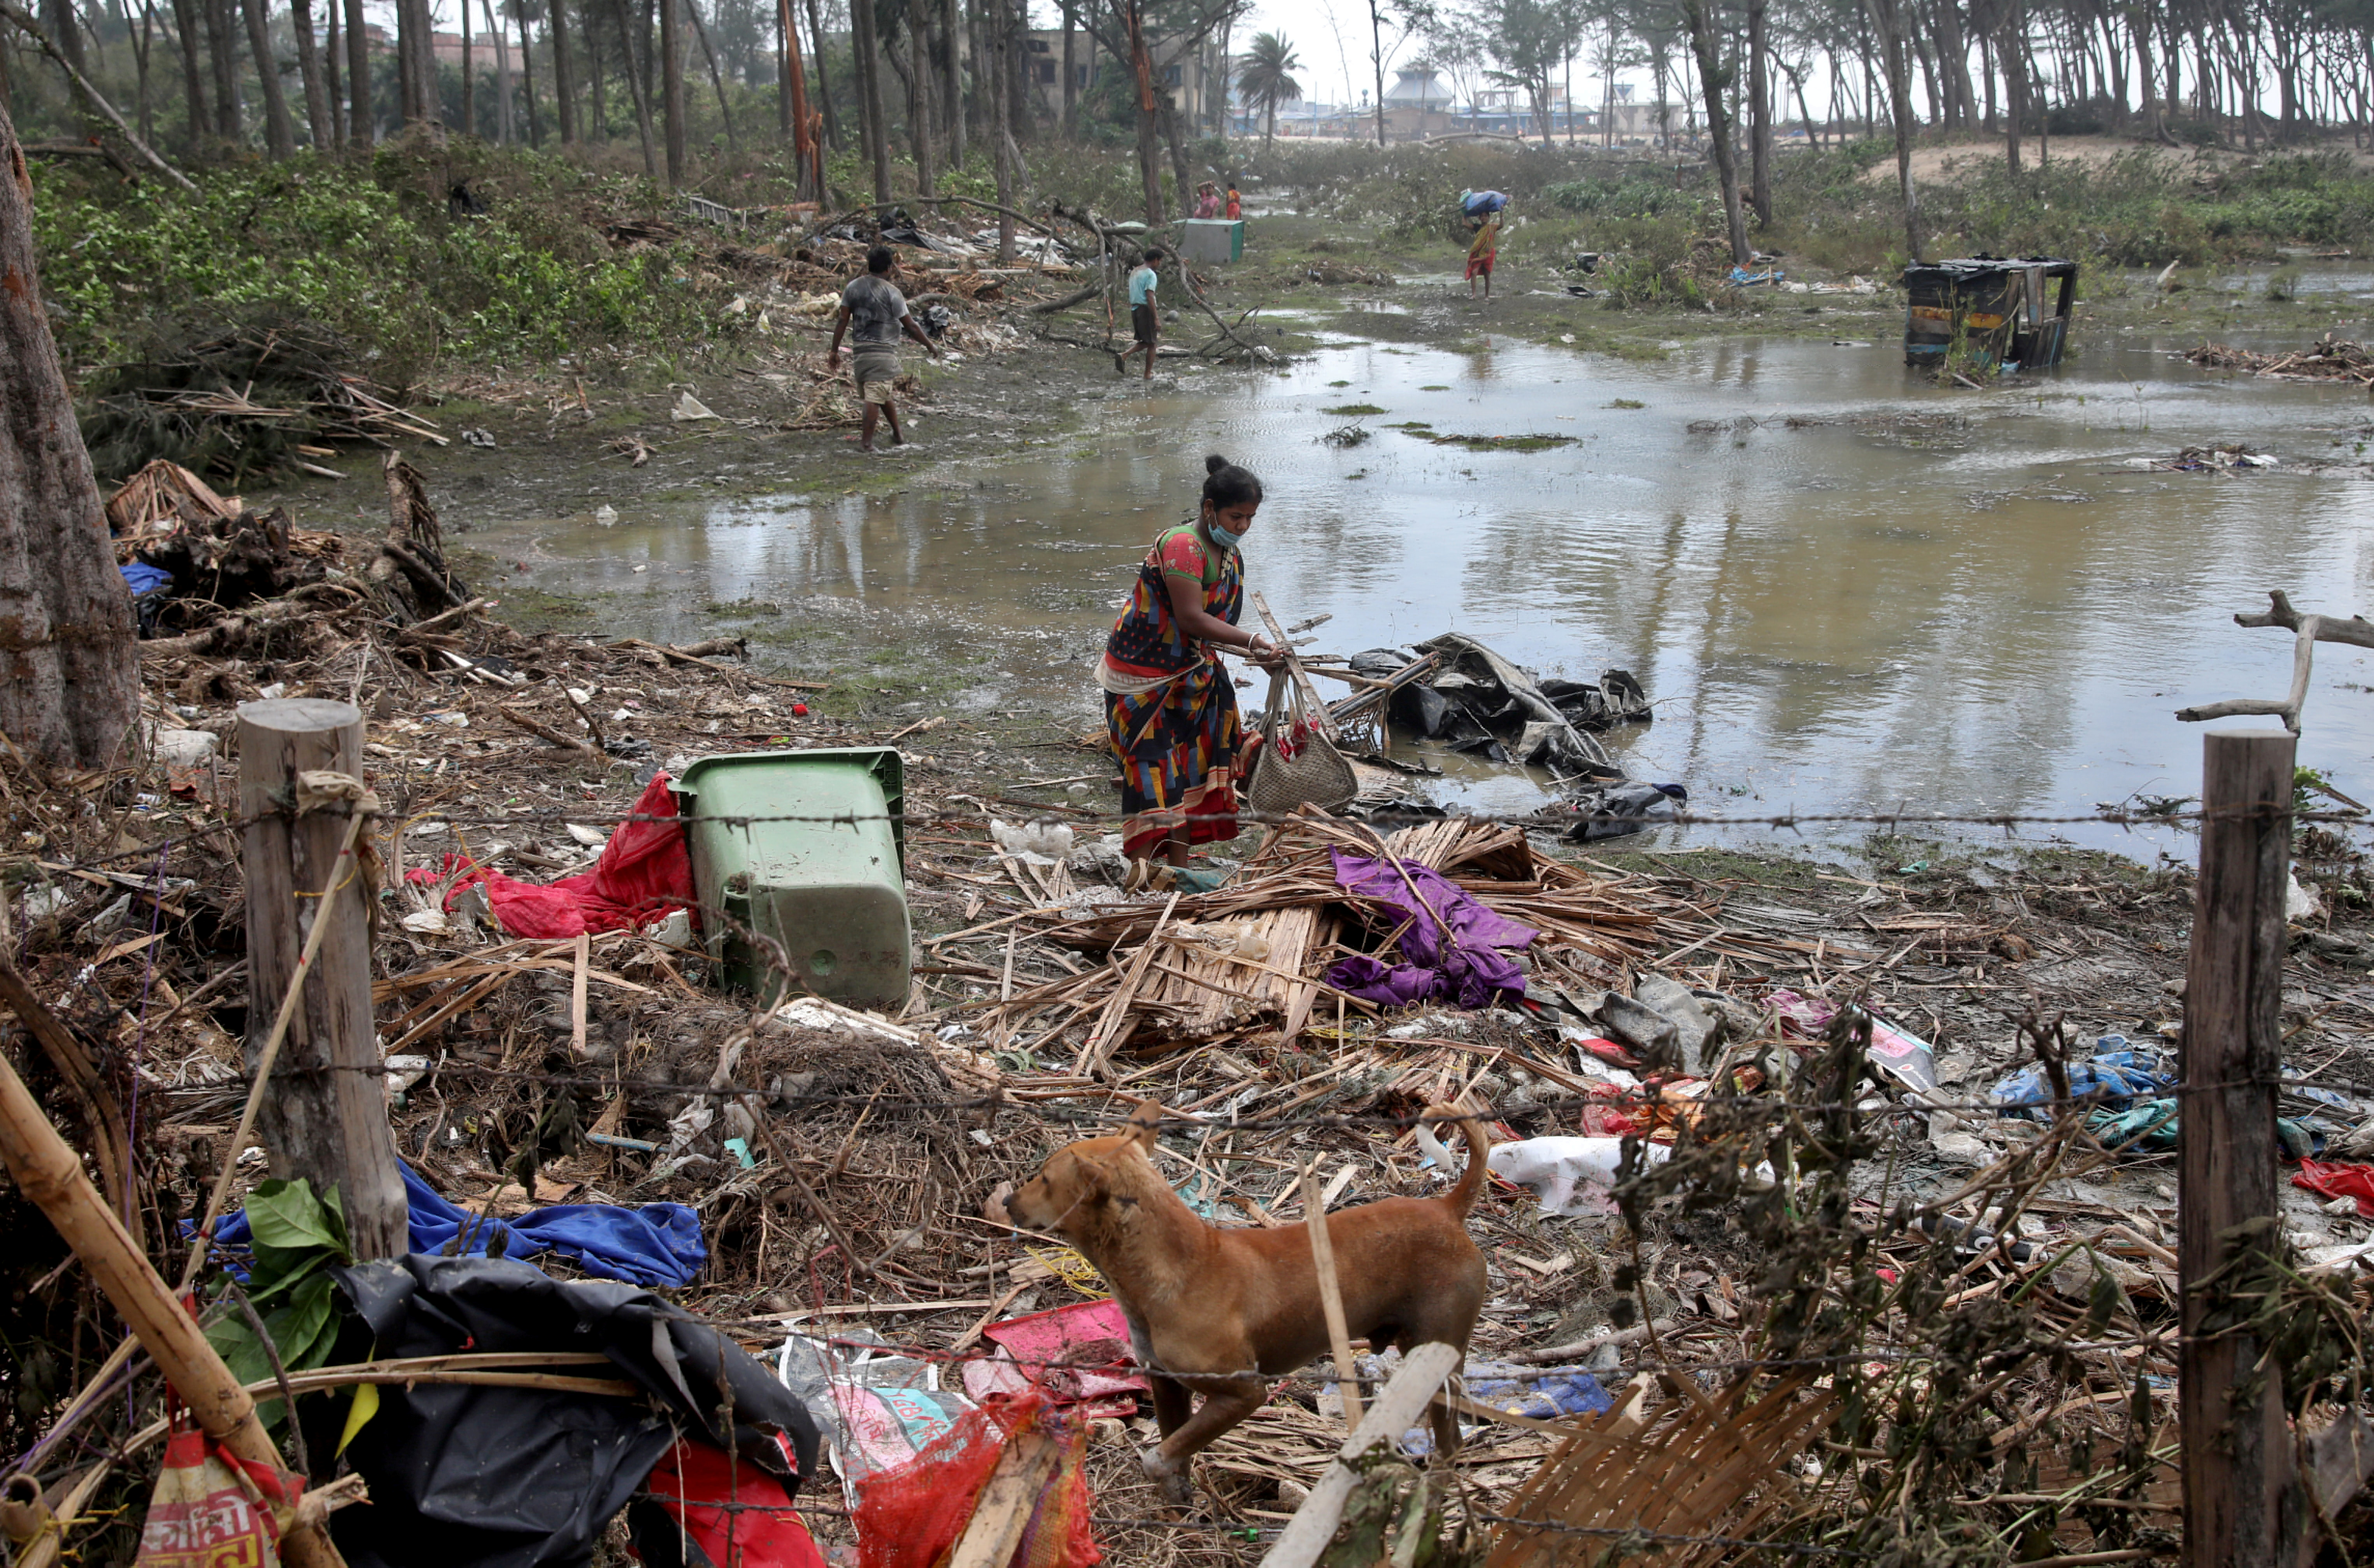 A woman salvages her belongings near her damaged hut following Cyclone Yaas in Digha, Purba Medinipur district in the eastern state of West Bengal, India, May 27, 2021. REUTERS/Rupak De Chowdhuri